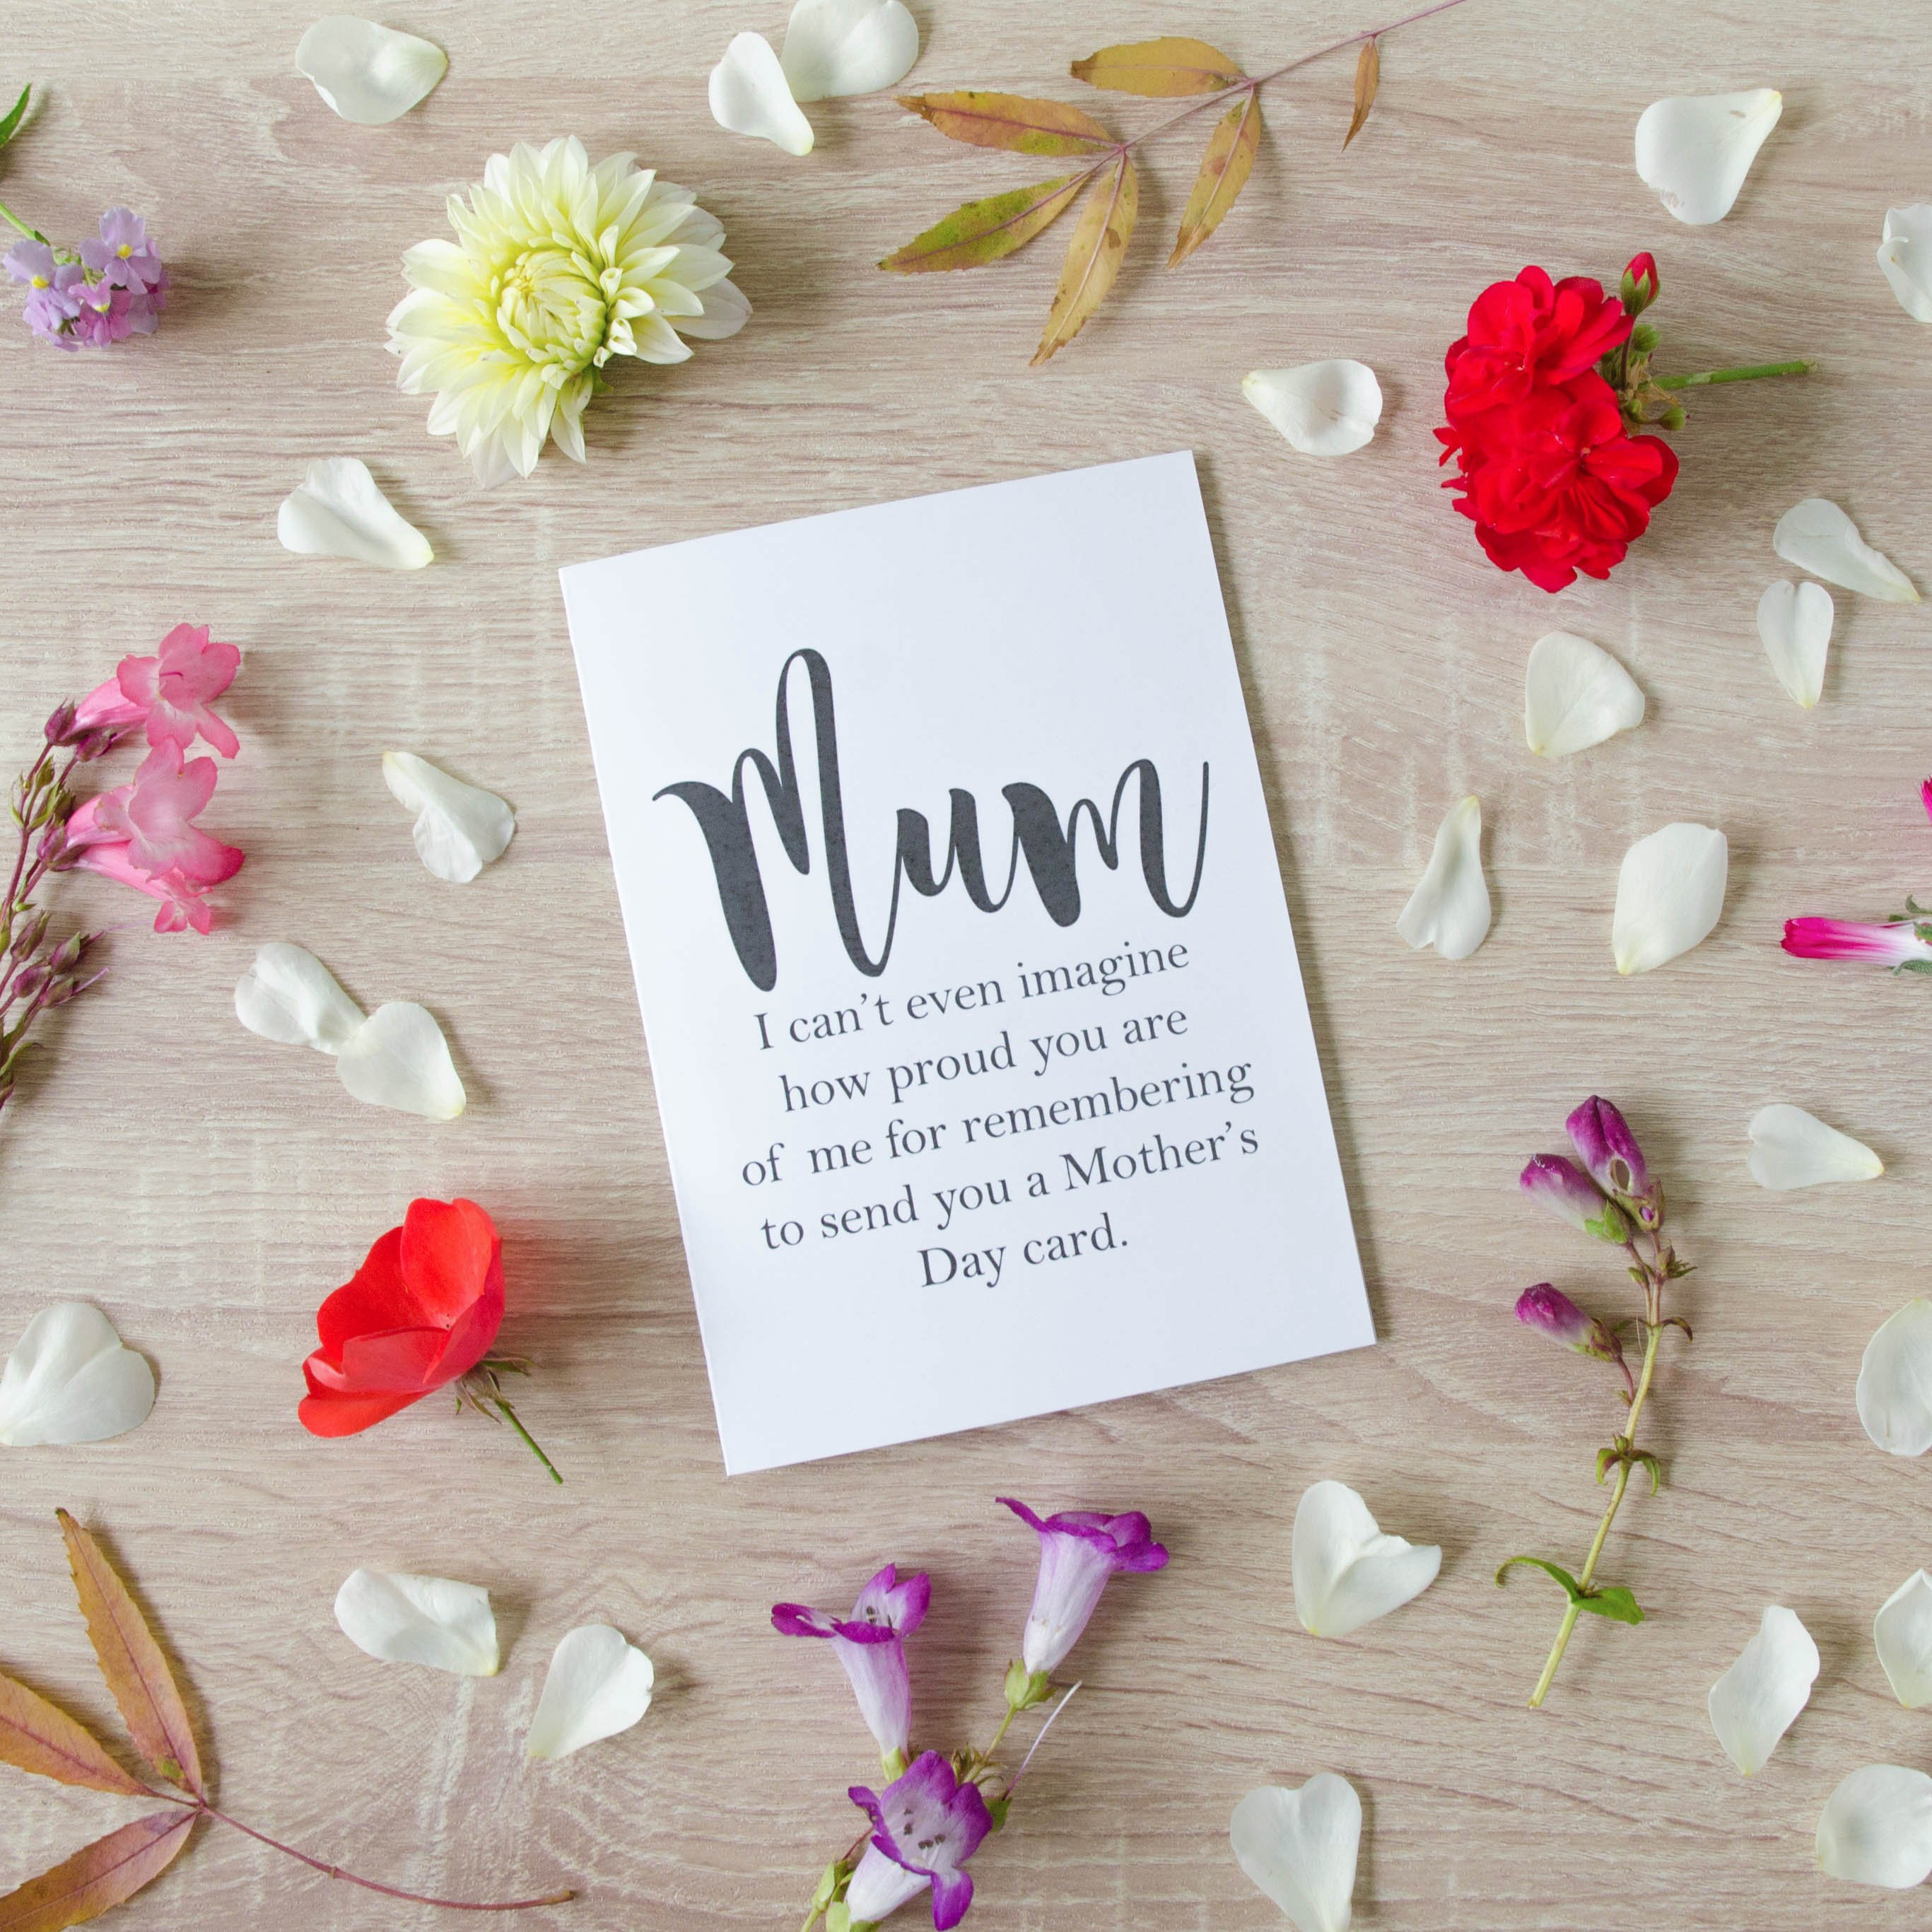 Happy Mother's Day 2019 Free Download Printable Mother's Day Greetings Cards